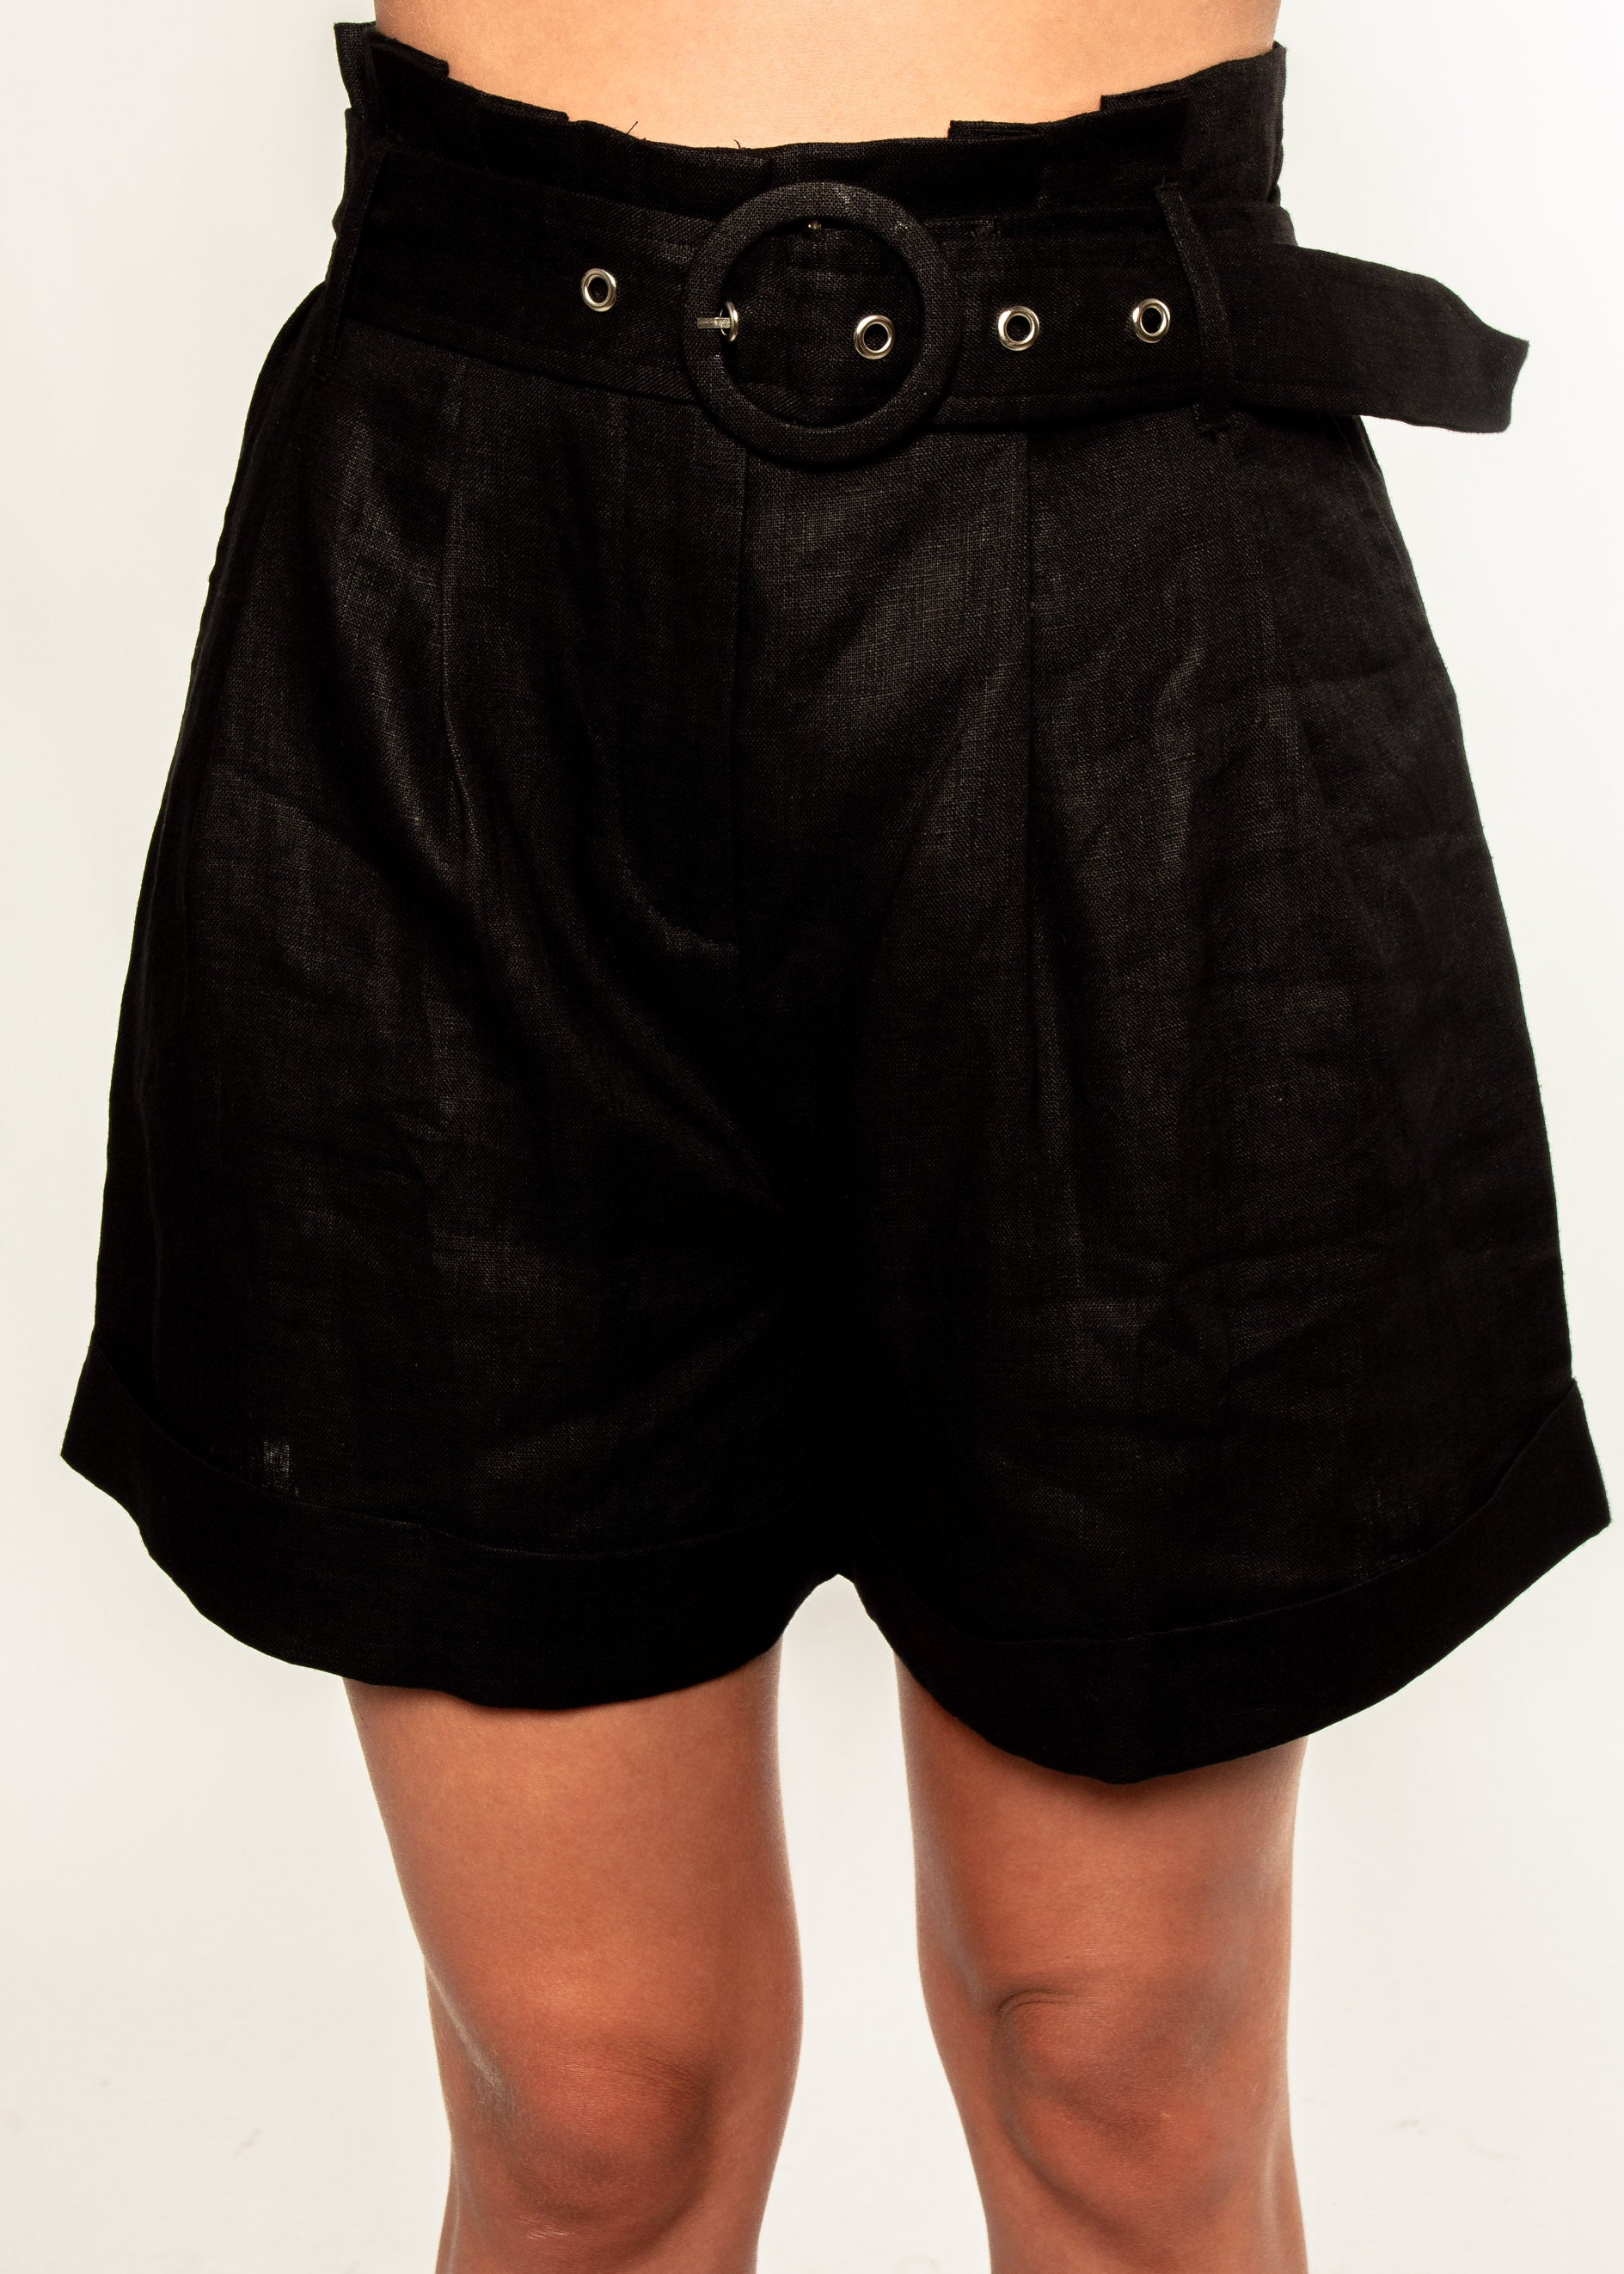 Zara Shorts - Black